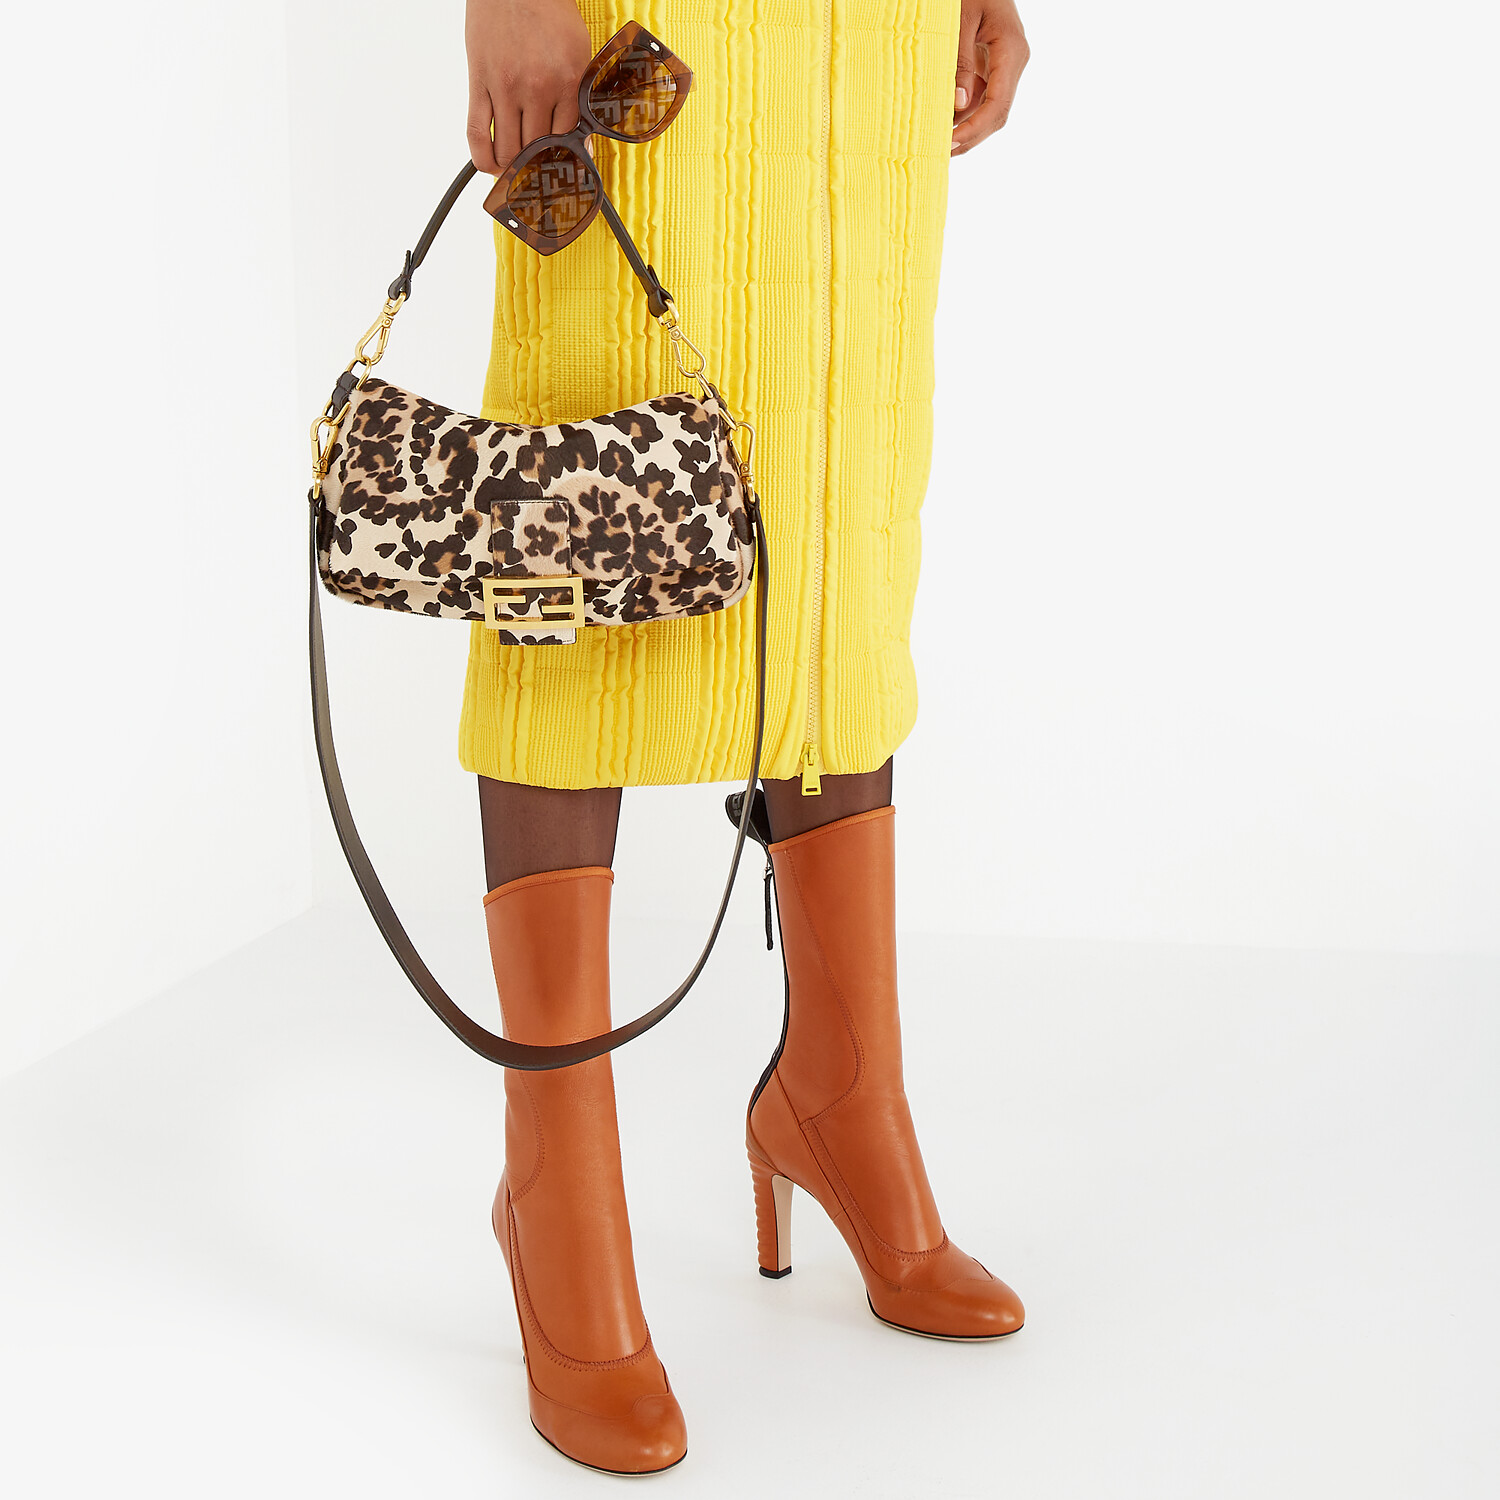 FENDI ANKLE BOOTS - Brown leather ankle boots - view 5 detail